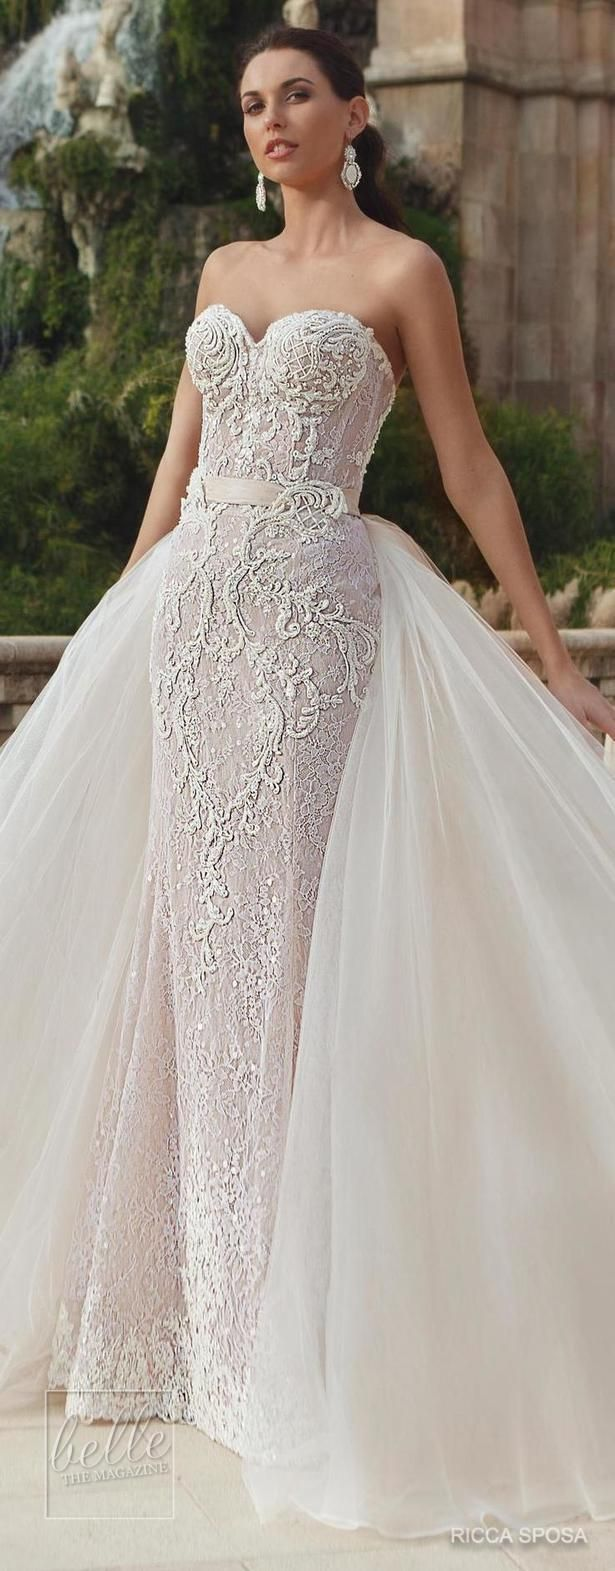 1428 best brautkleid images on Pinterest | Homecoming dresses straps ...